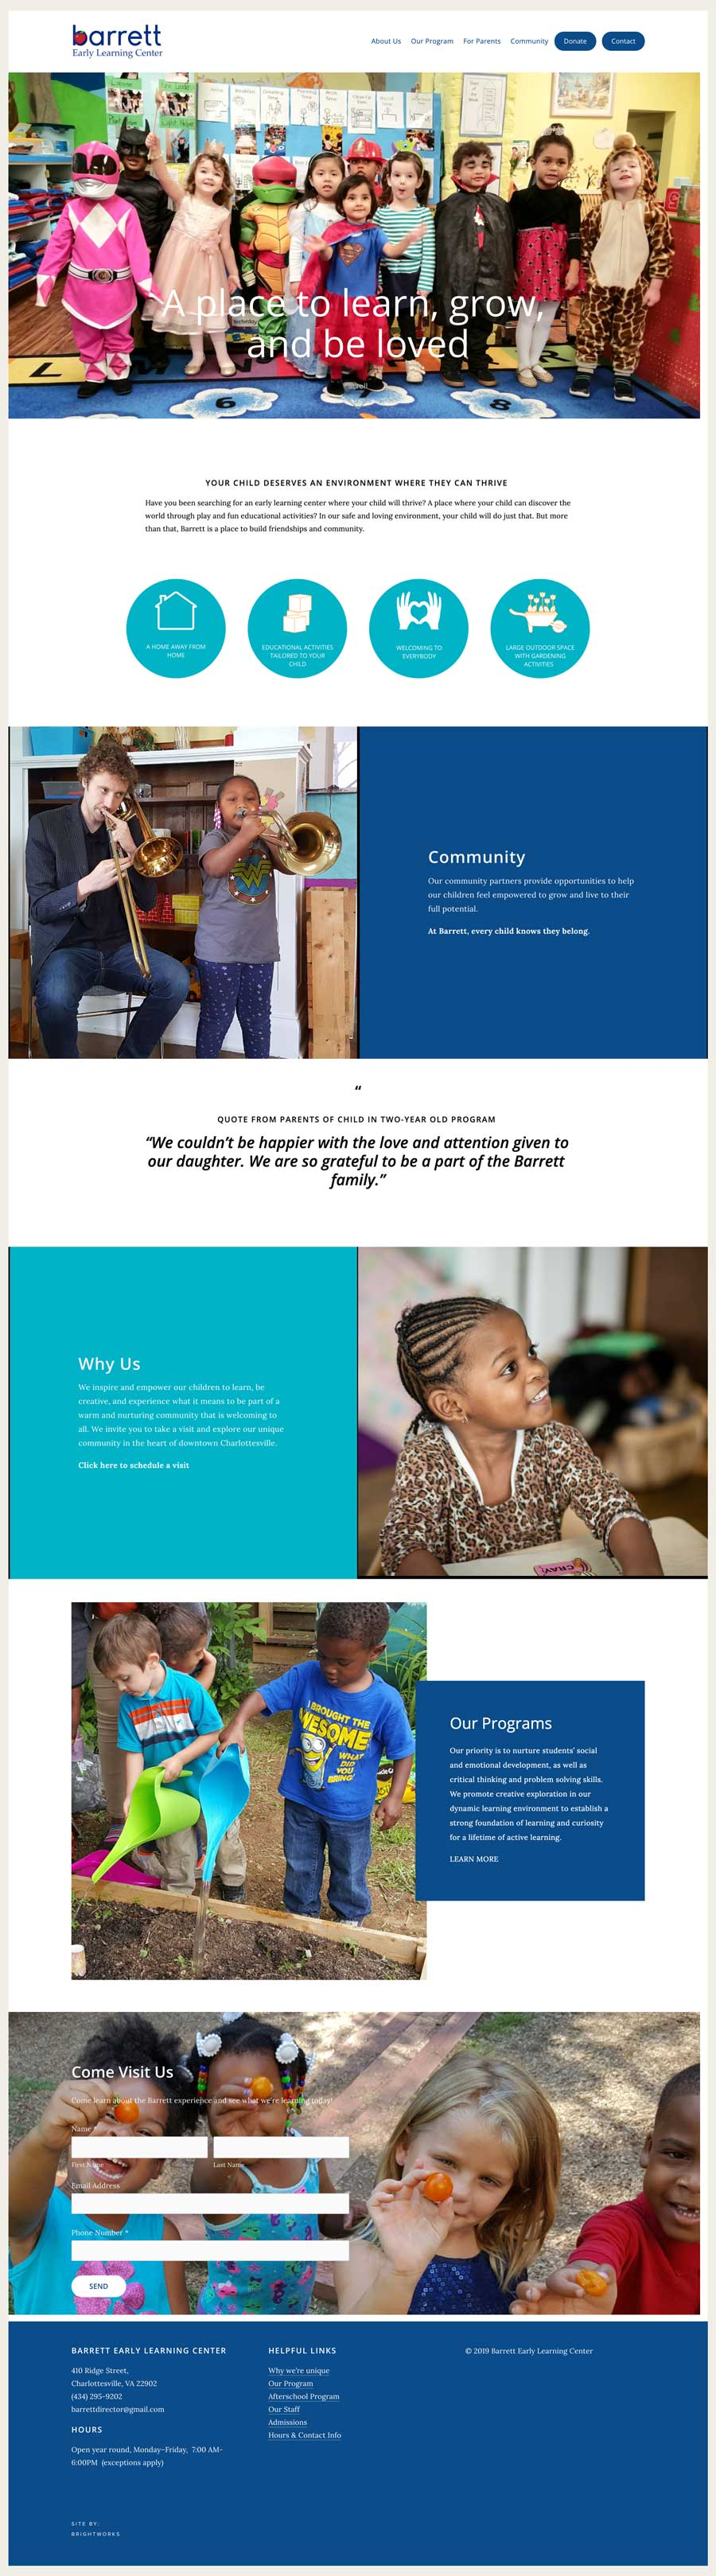 Website-design-for-Barrett-Early-Learning-Center-by-Brightworks.jpg